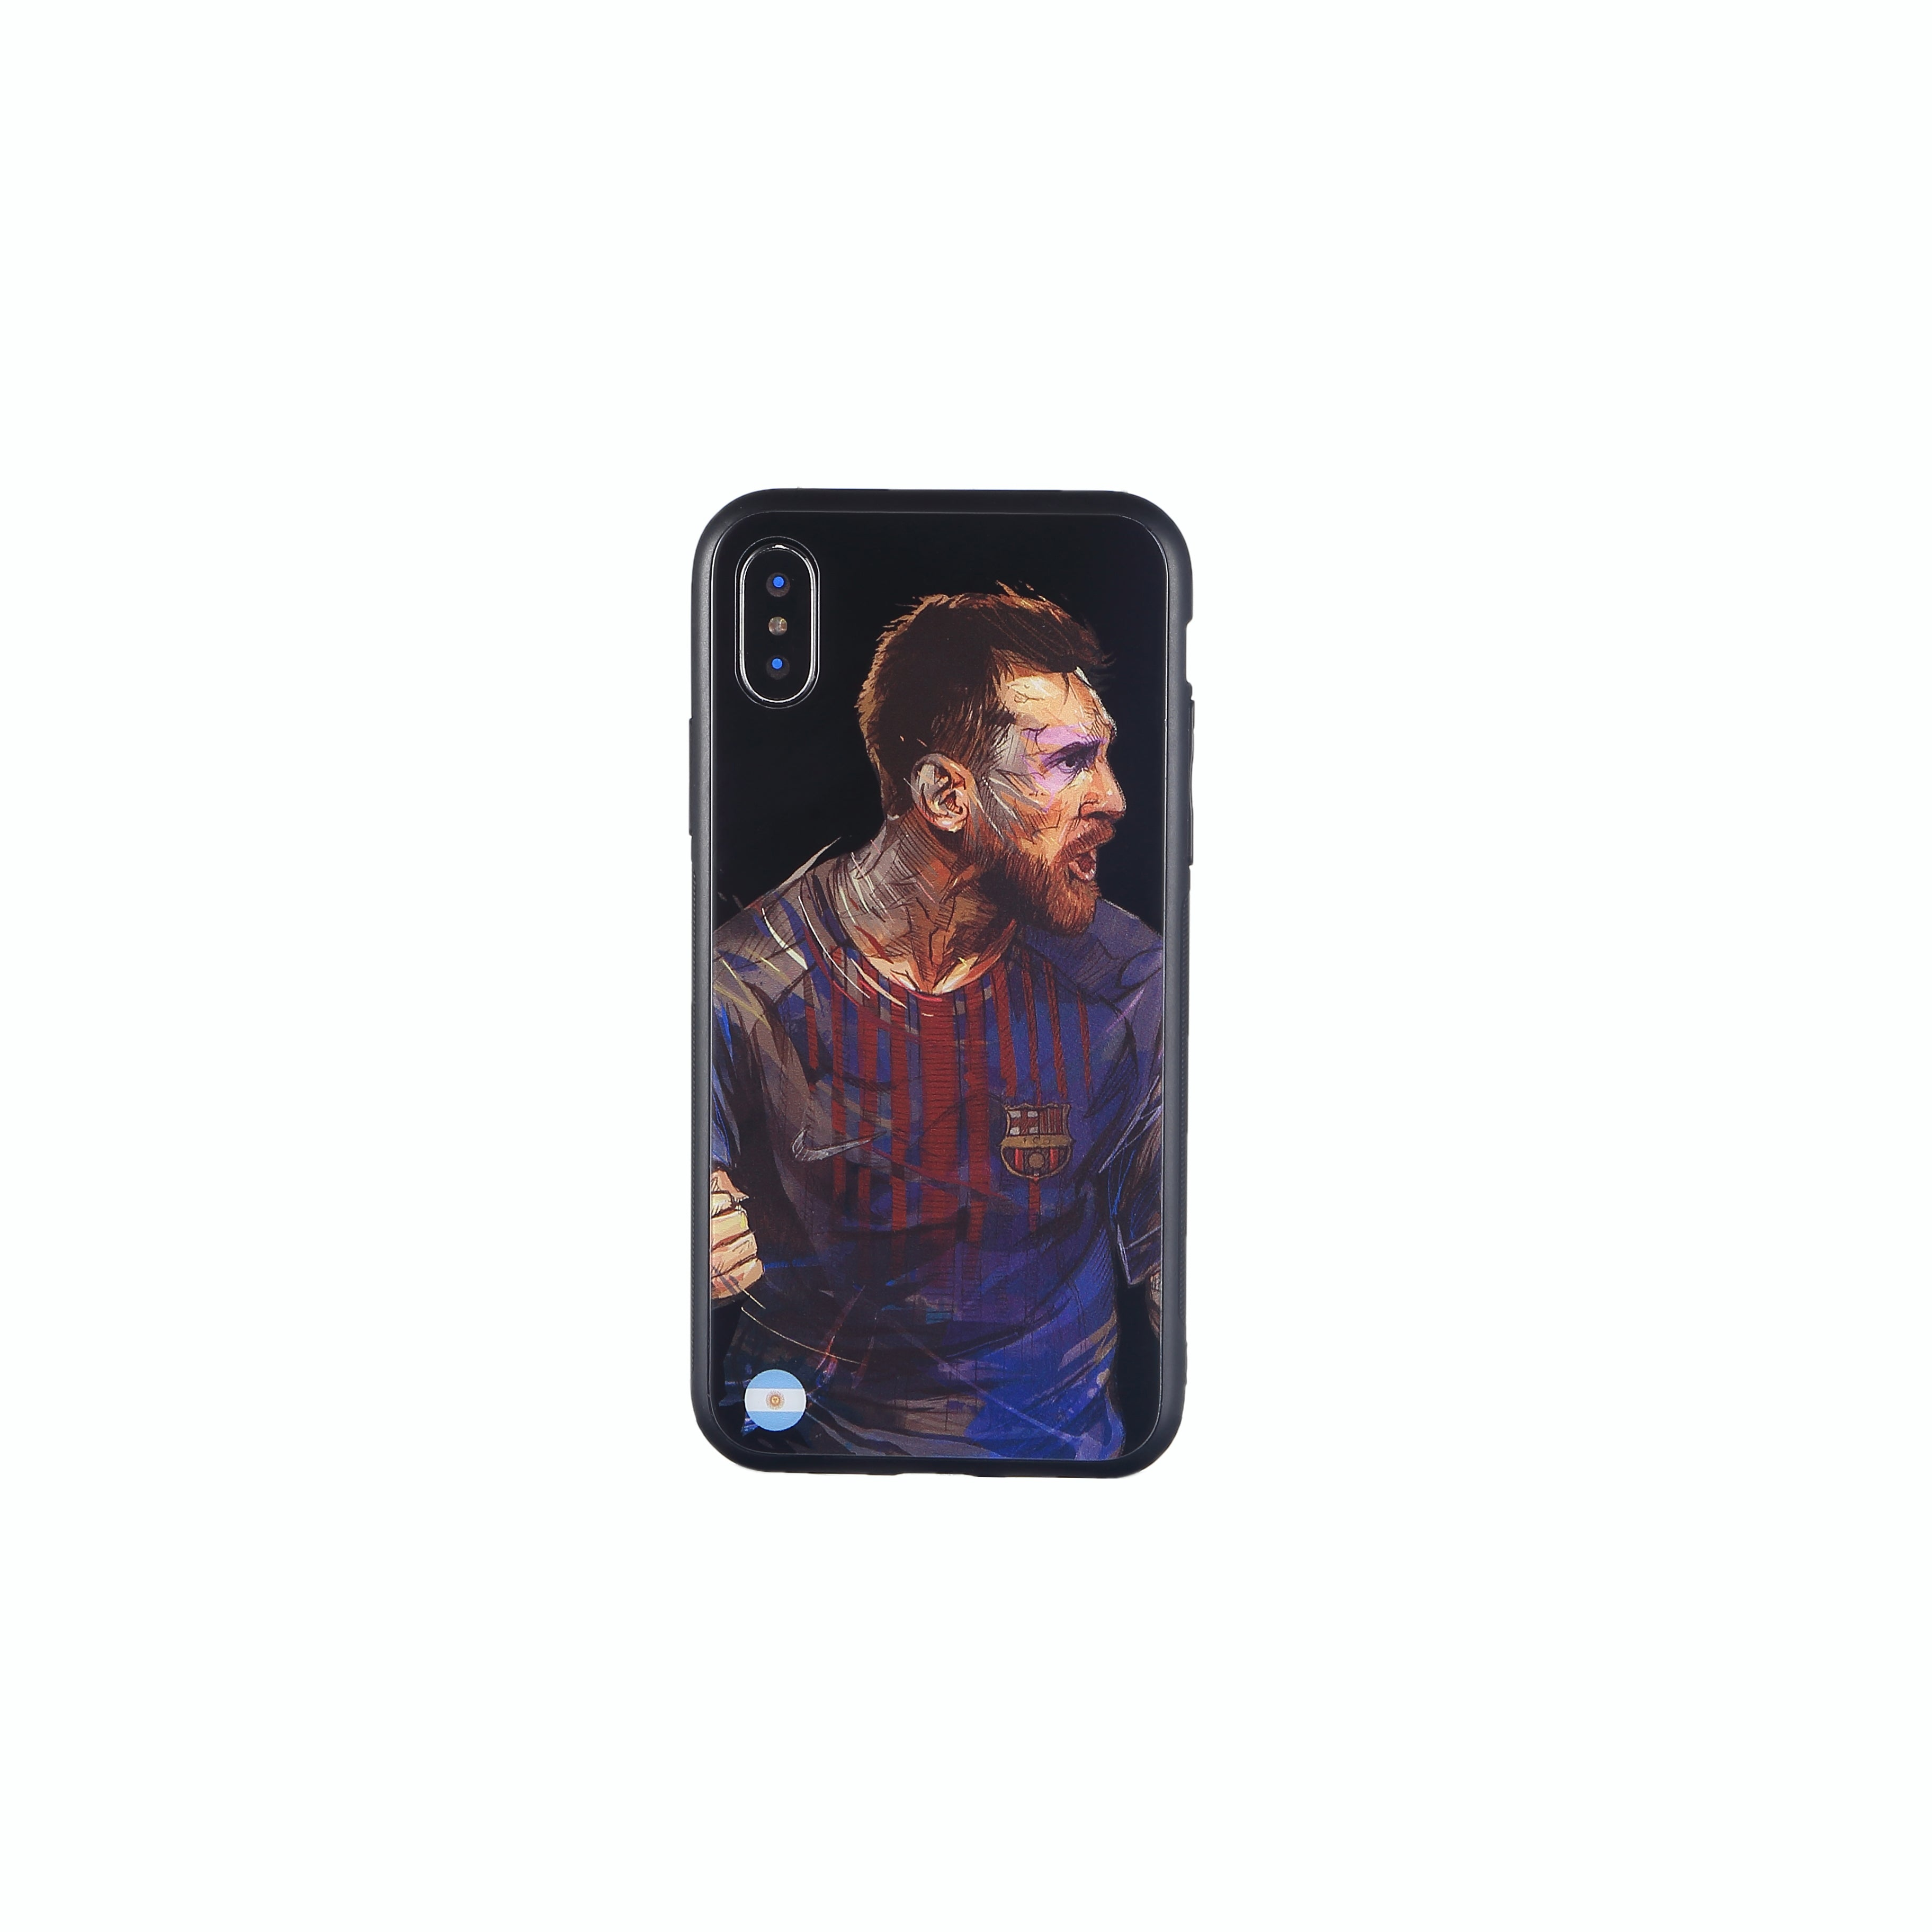 Lionel Messi, Football Fandom Toughened Glass iPhone Case